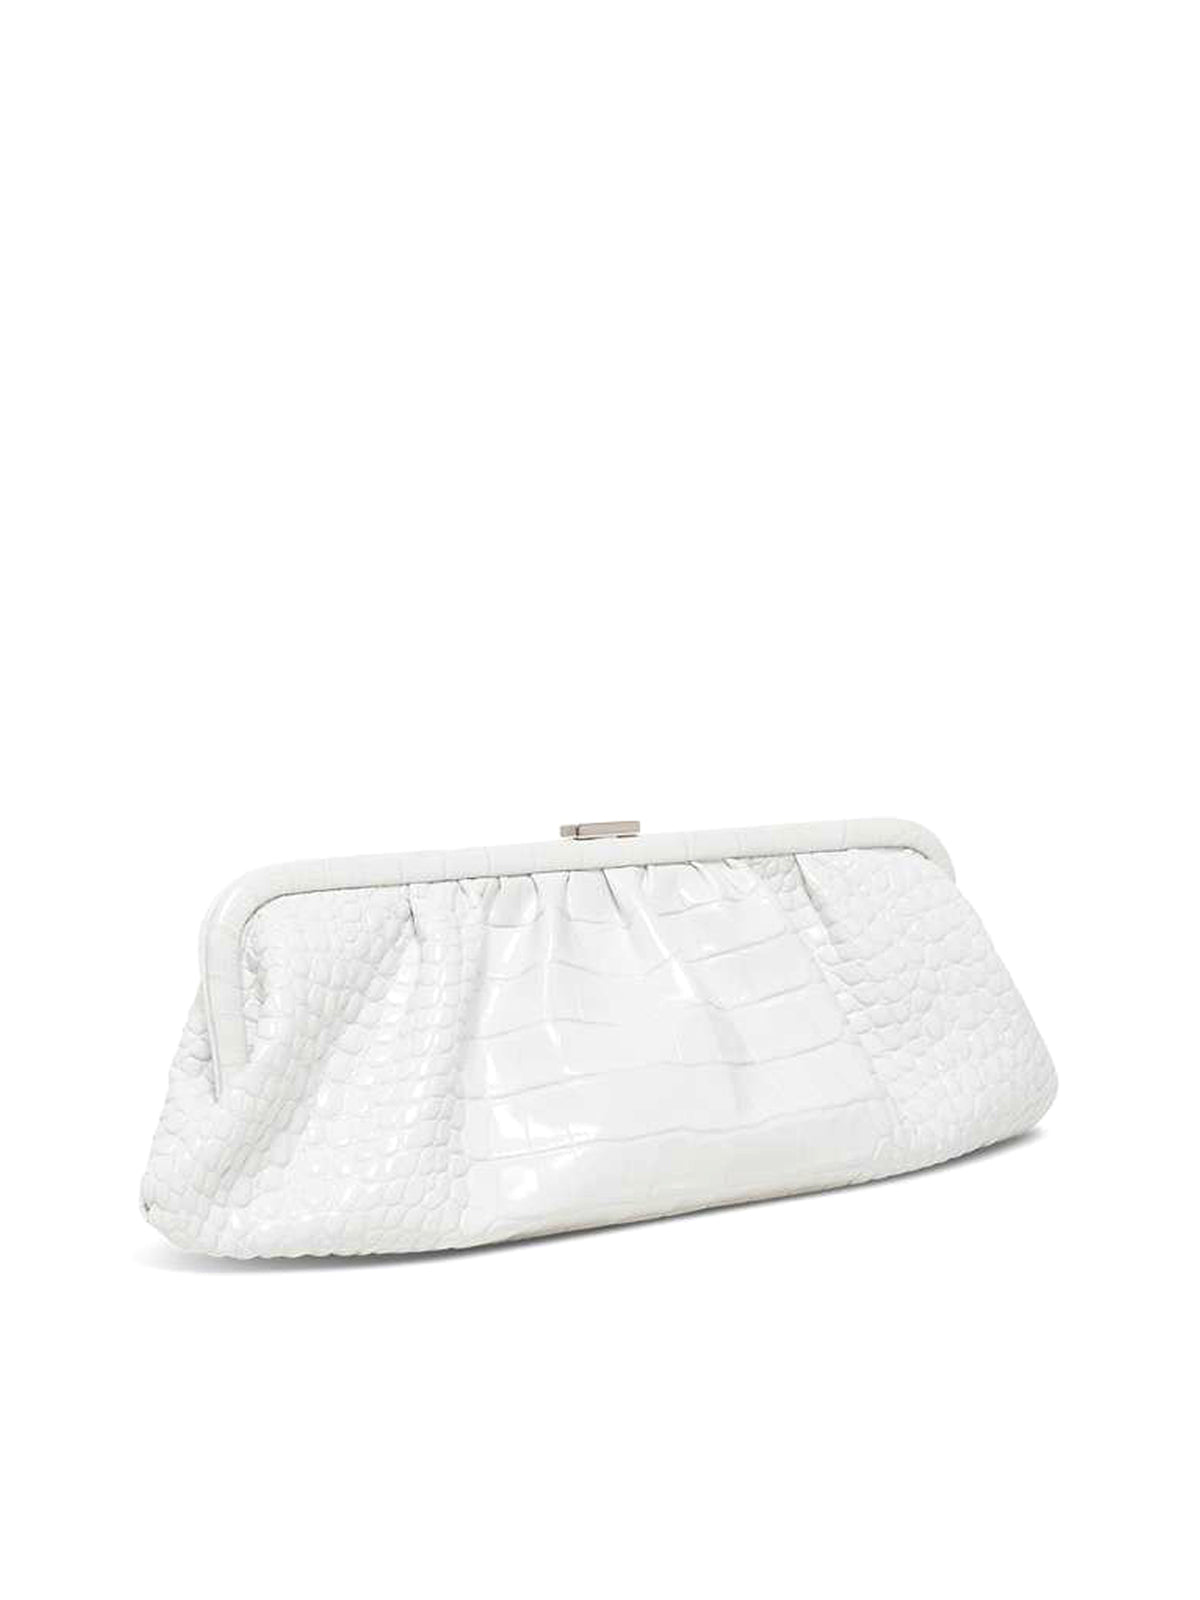 Cloud XL clutch bag